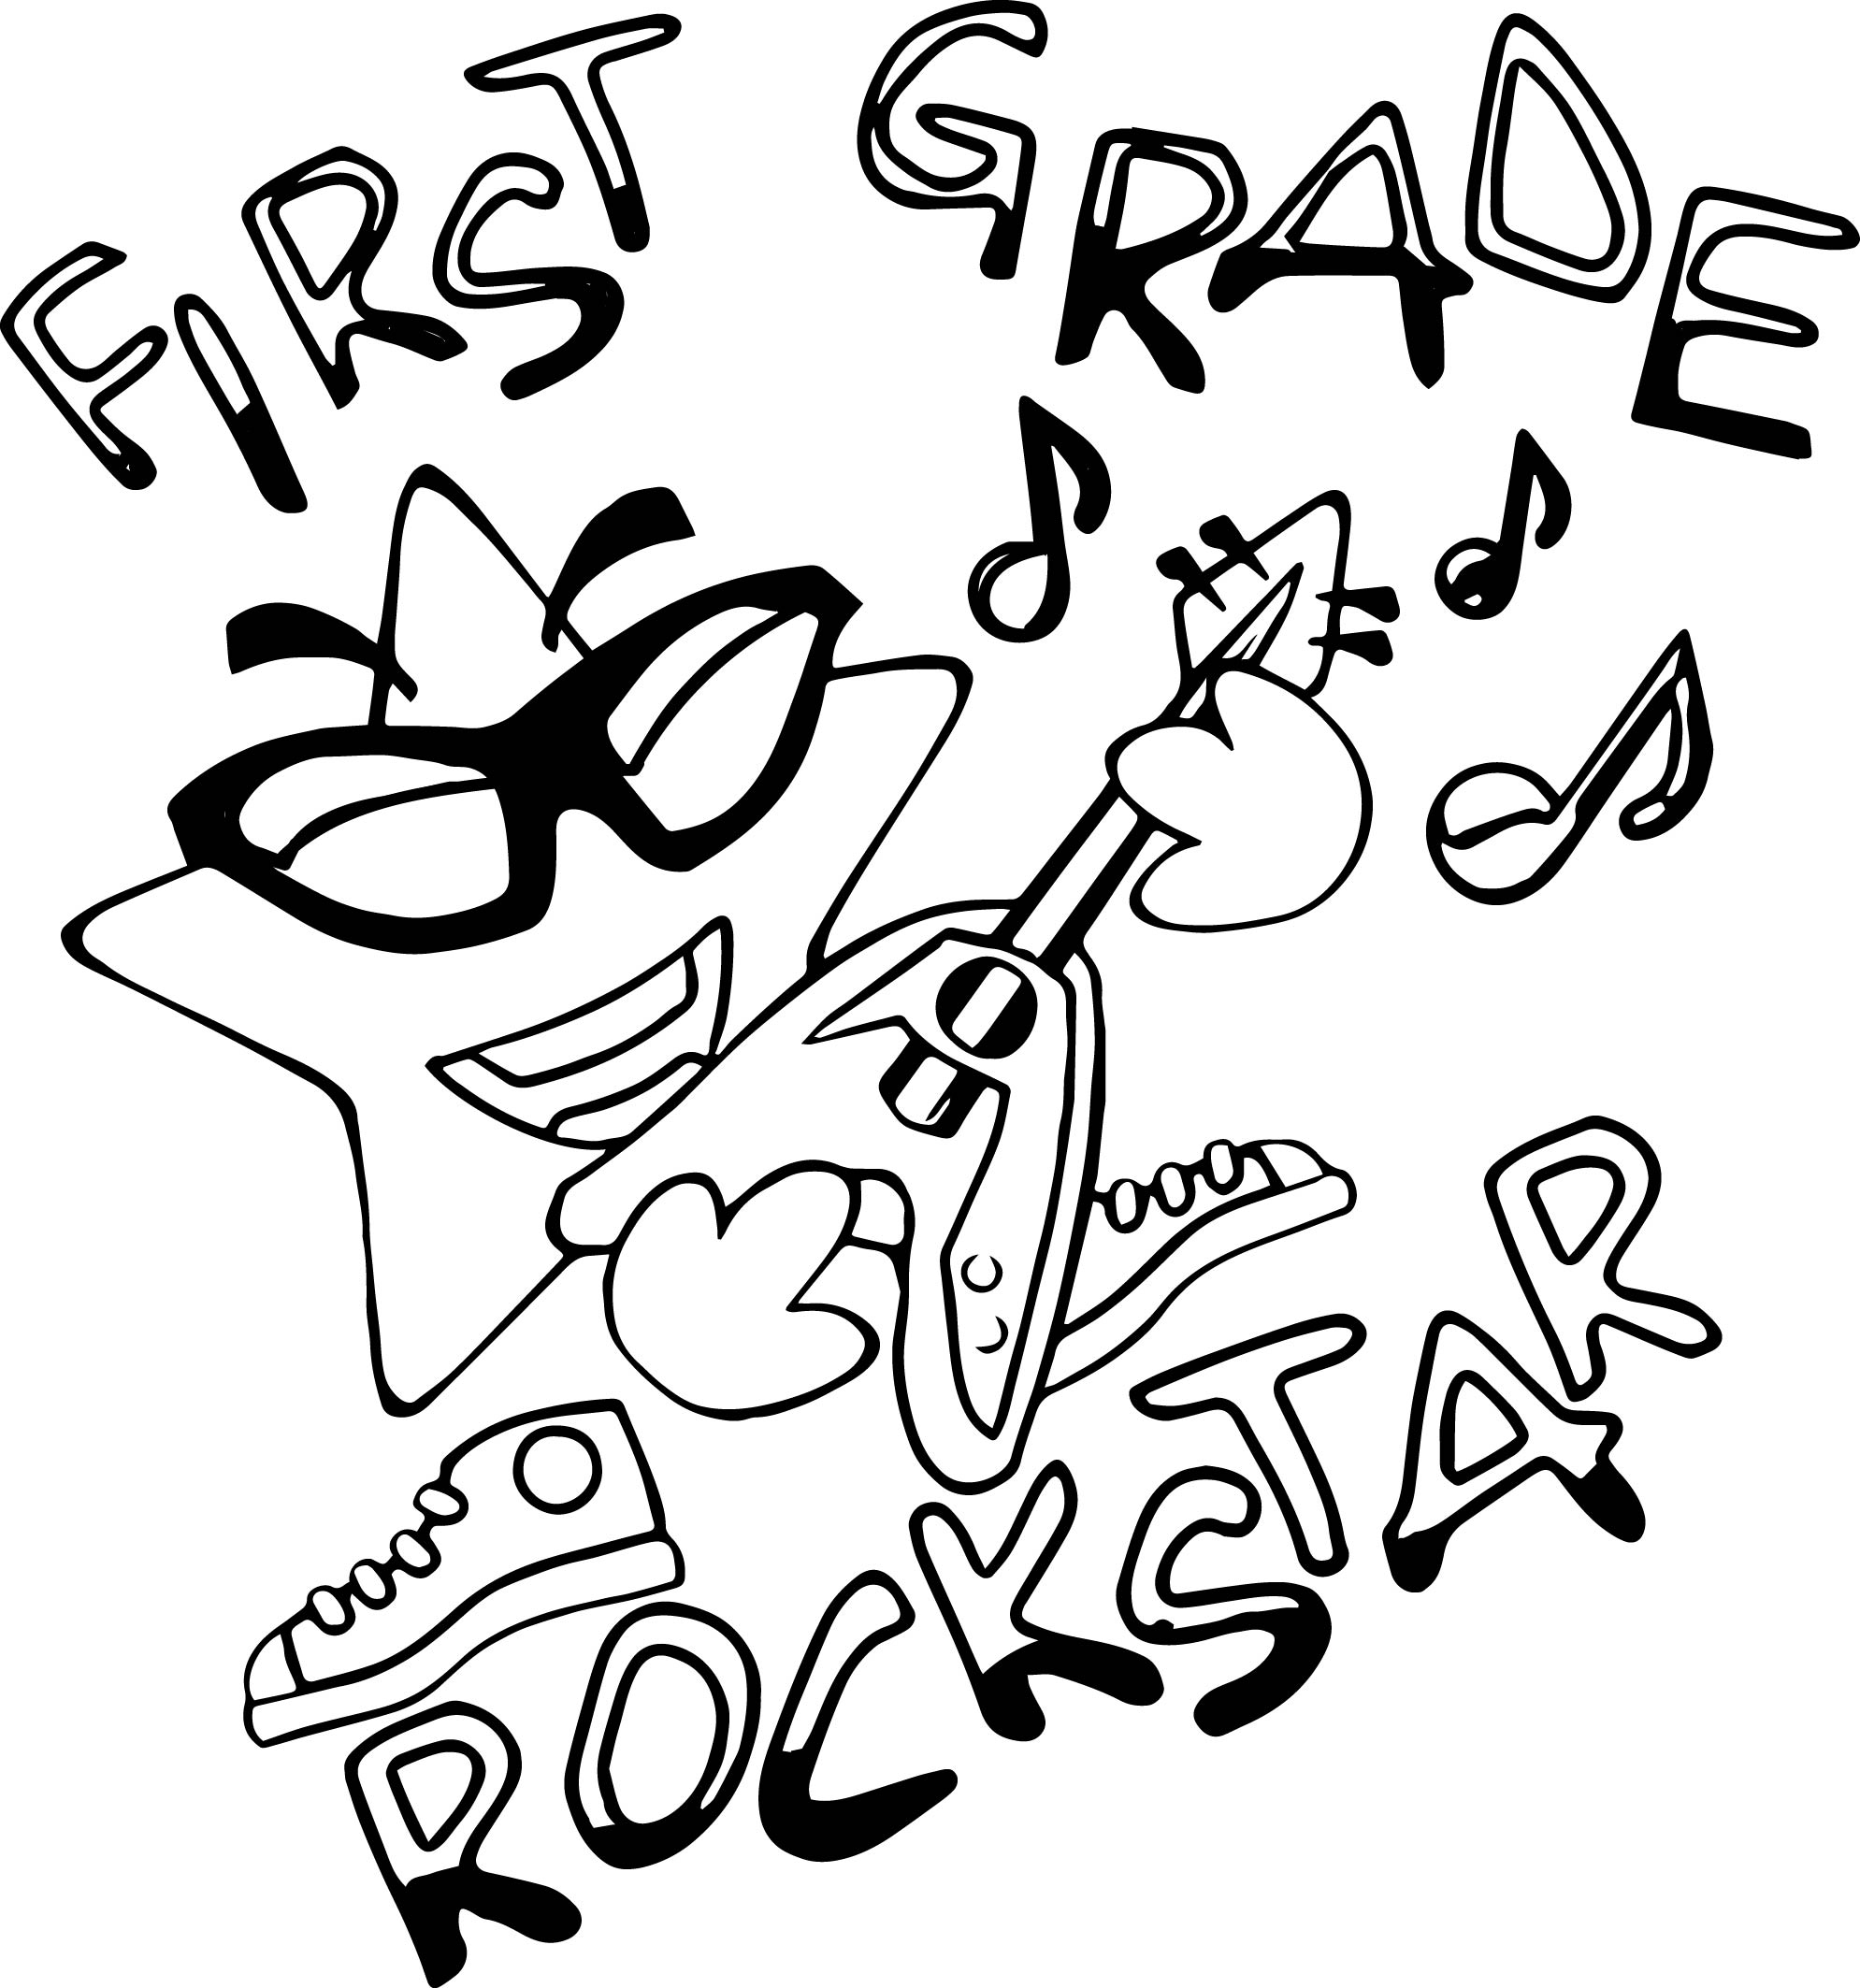 Rock Star Coloring Pages - Bltidm